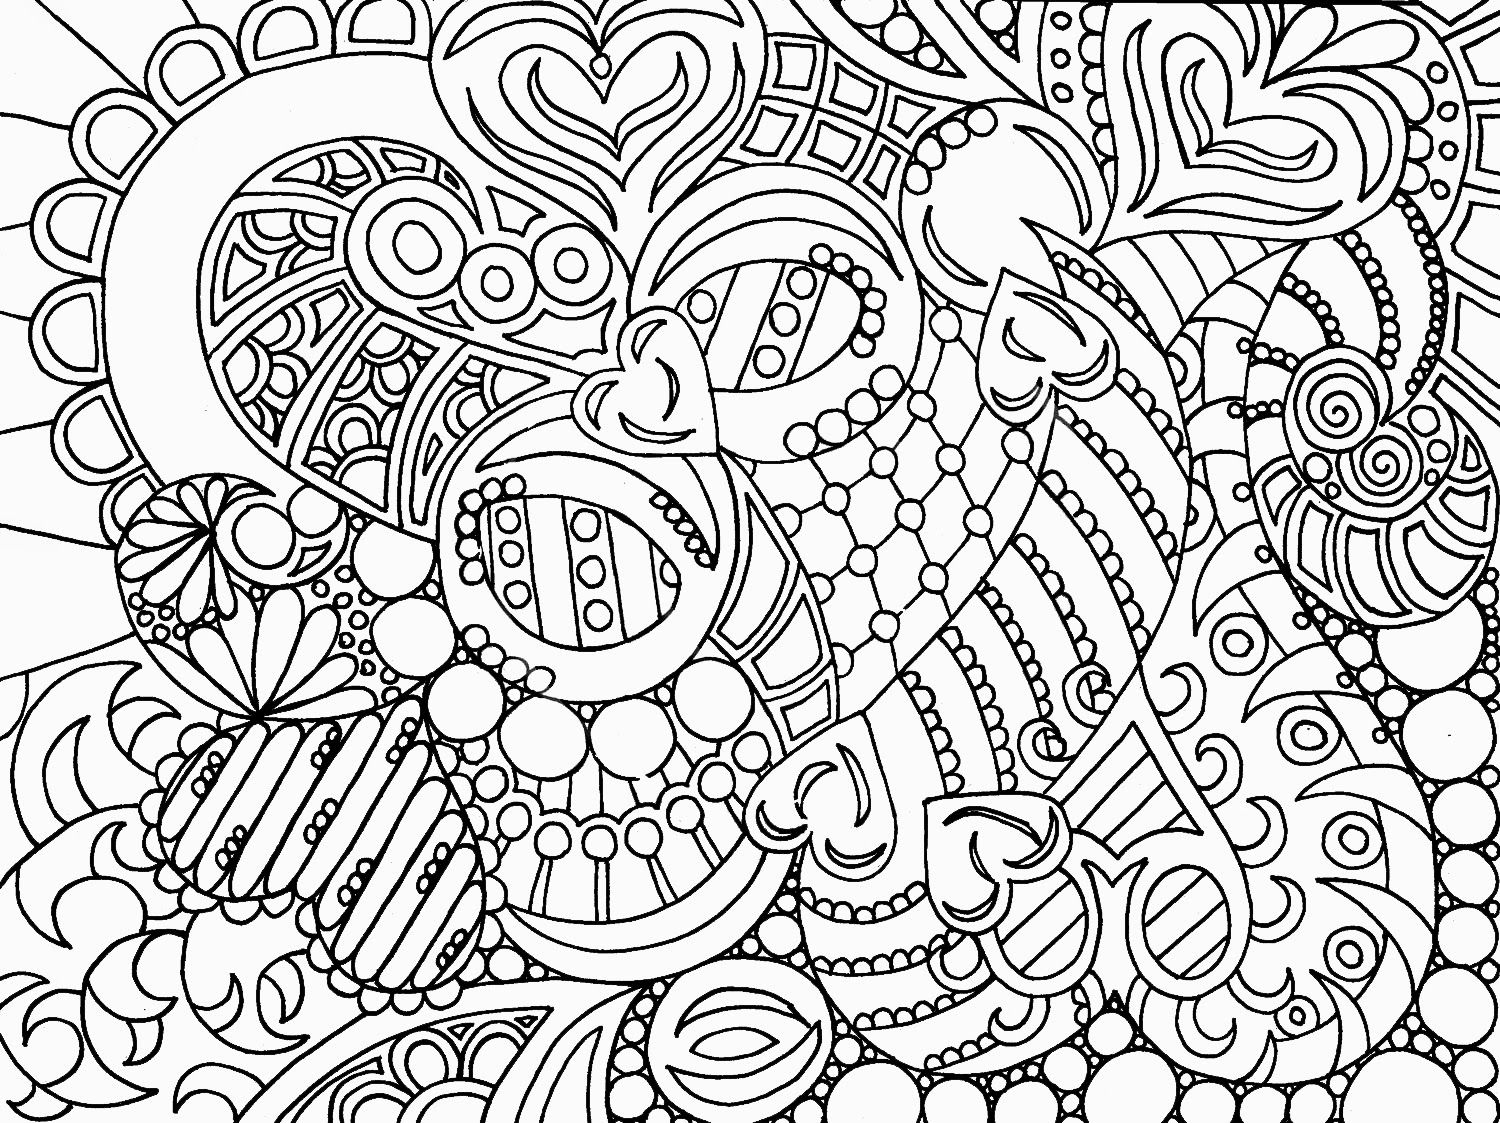 art therapy coloring pages coaching capability coordination of coloring sheet - Art Therapy Coloring Pages